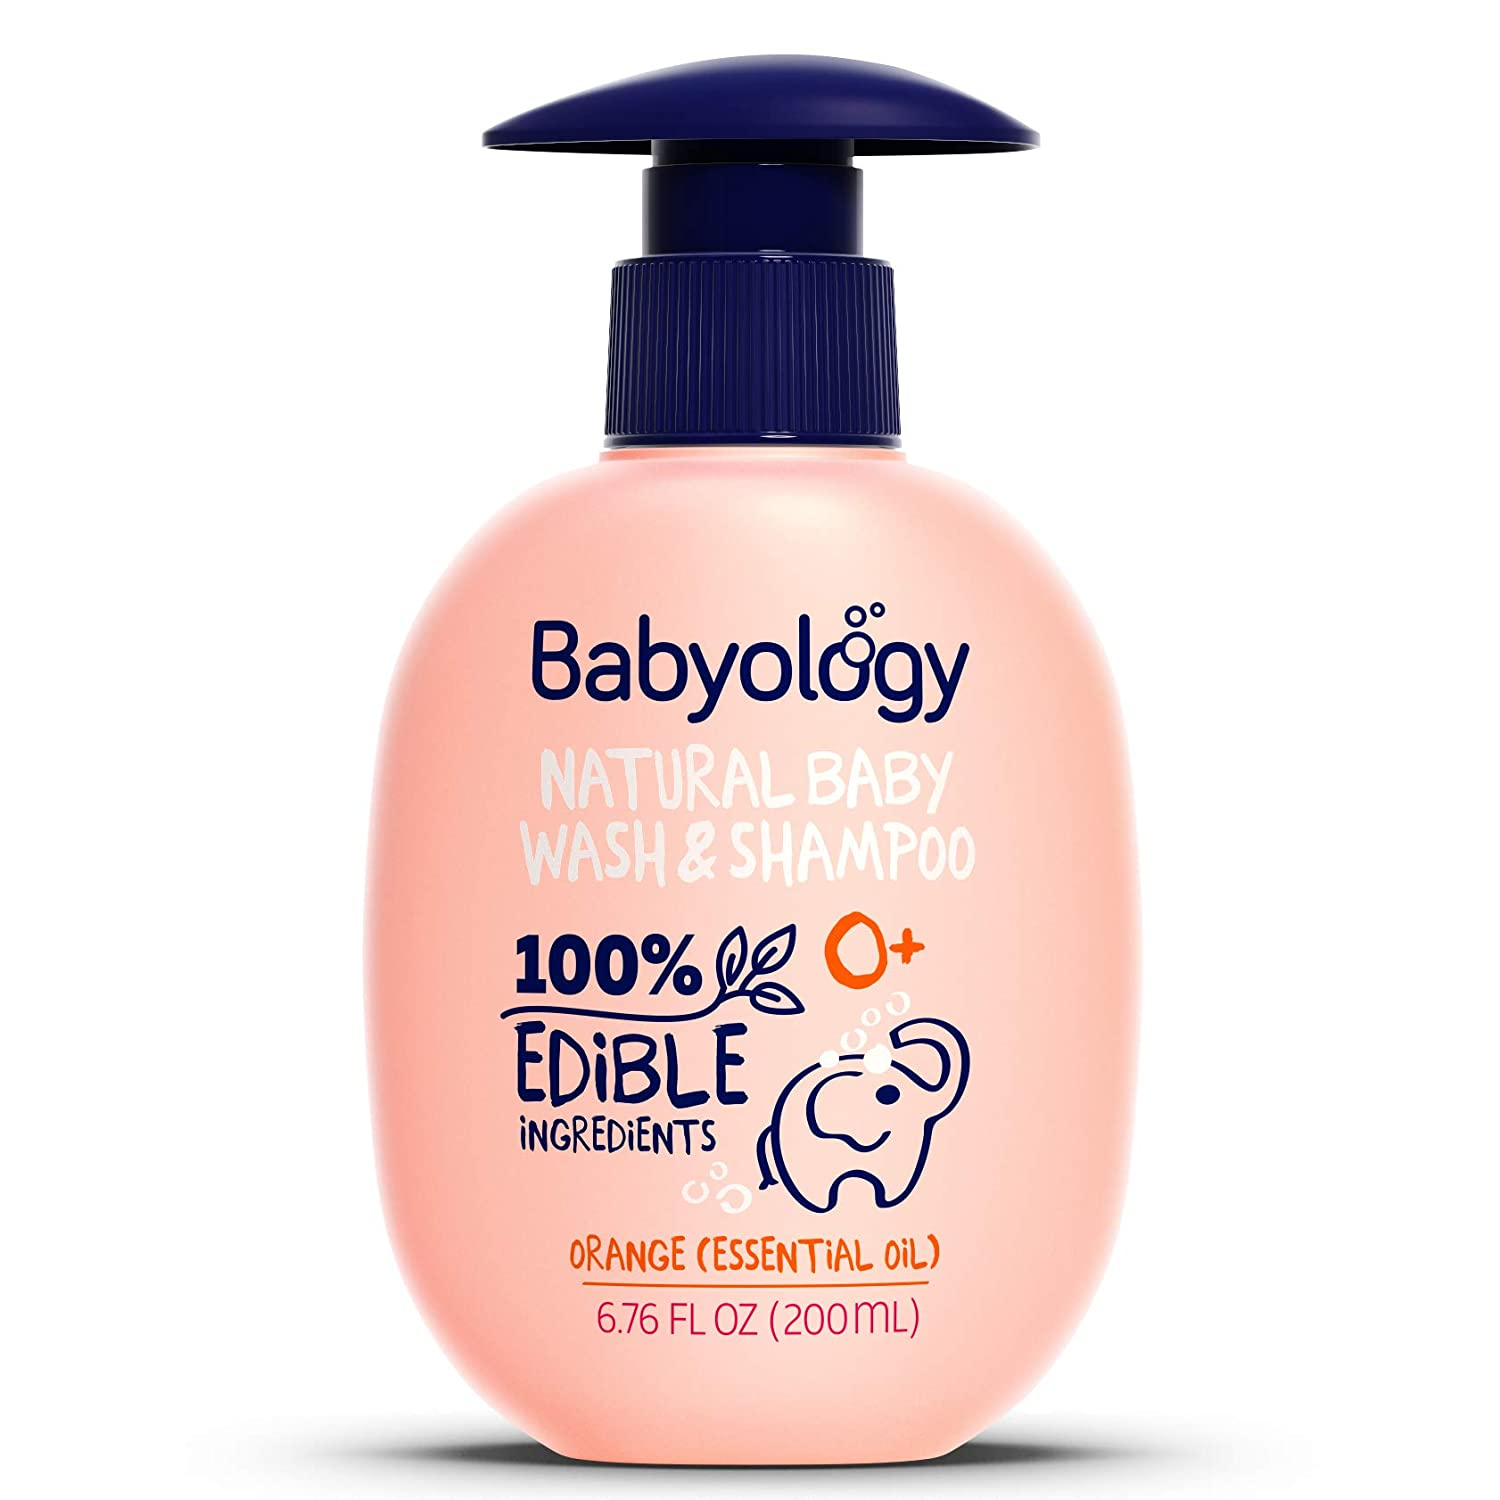 Babyology - 100% Edible Ingredients - Baby Wash & Shampoo - Organic Orange (Essential Oil)